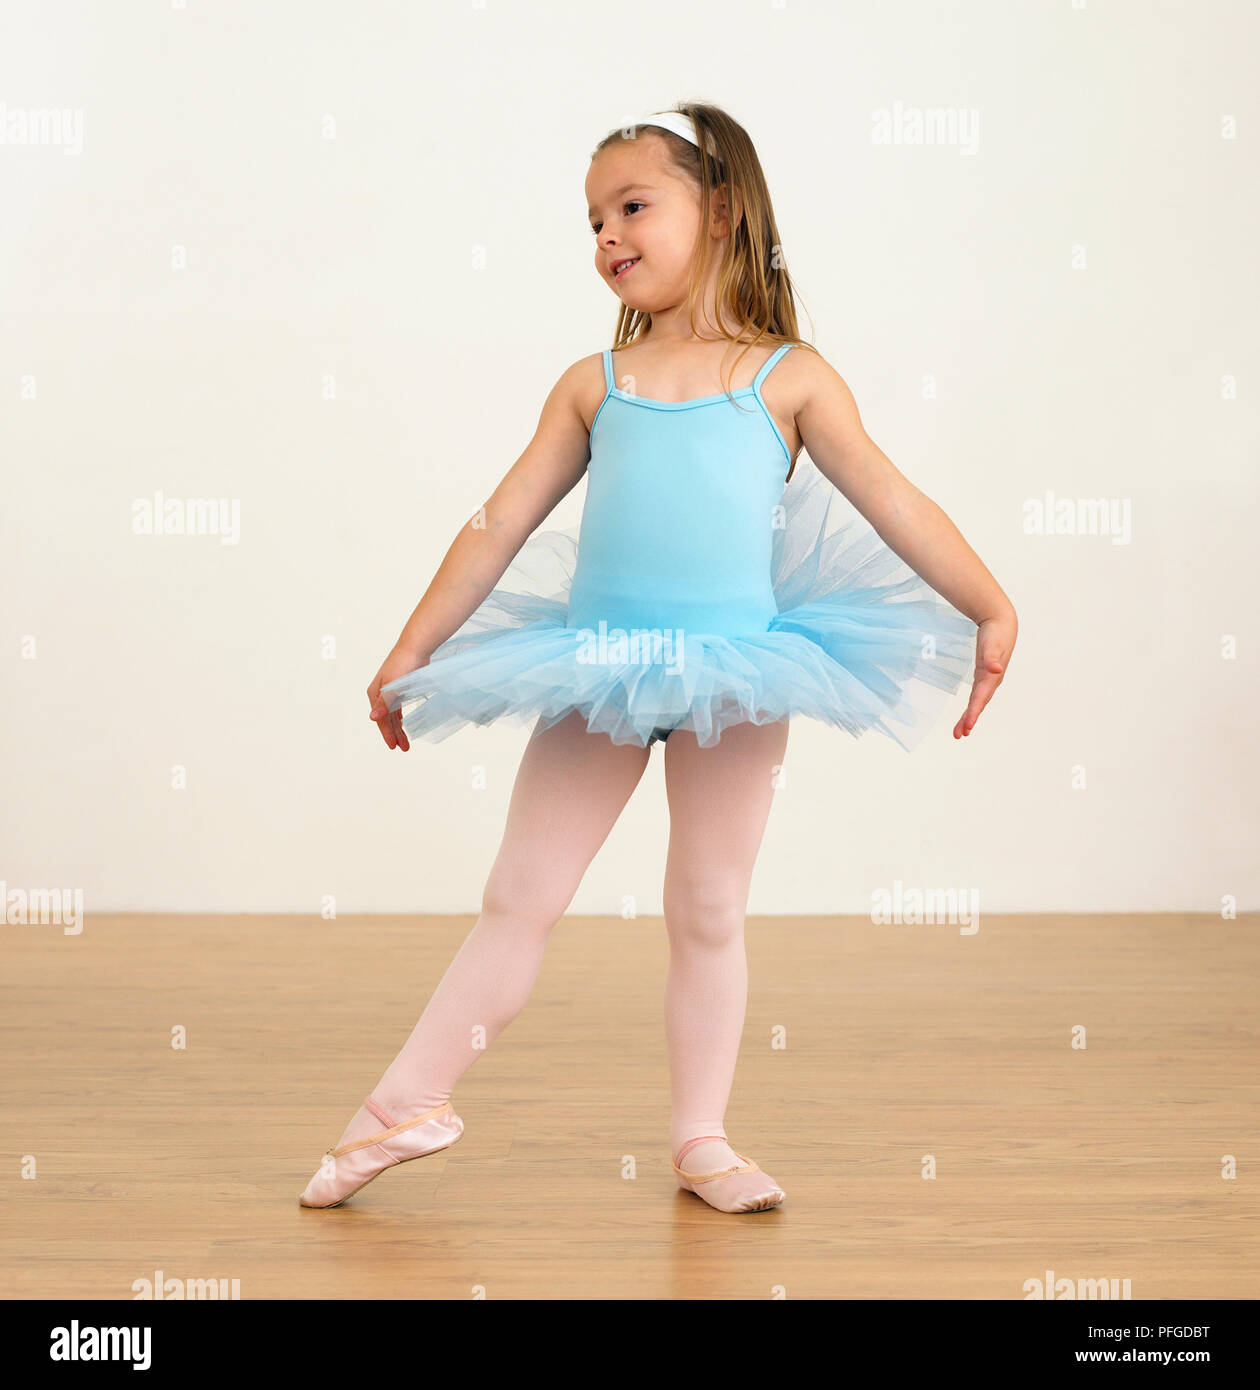 cc2474086aef Girl in blue ballet costume practising first position